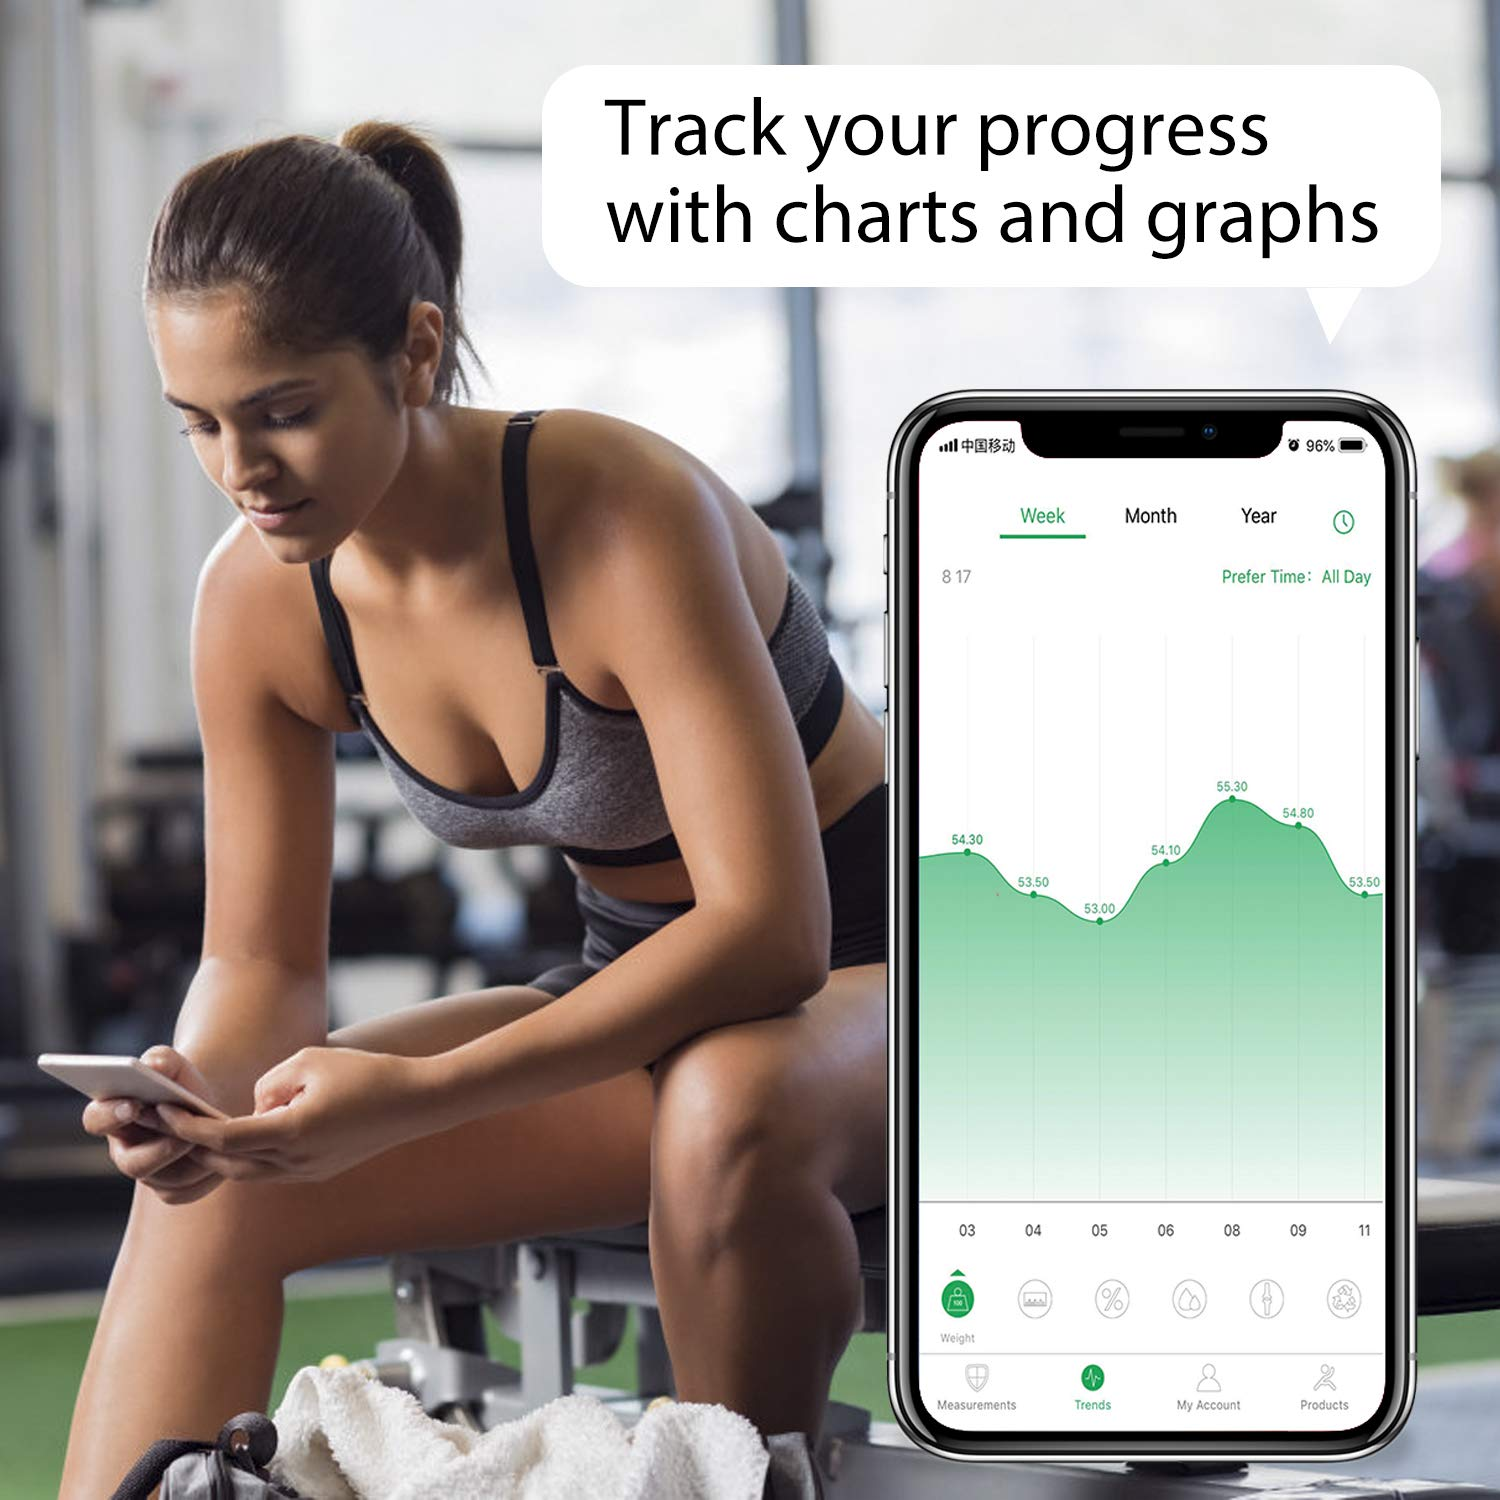 RENPHO Bluetooth Body Fat Smart Scale USB Rechargeable Digital Bathroom Weight Scale Body Fat Monitor with Smatrphone App, 396 lbs by RENPHO (Image #6)